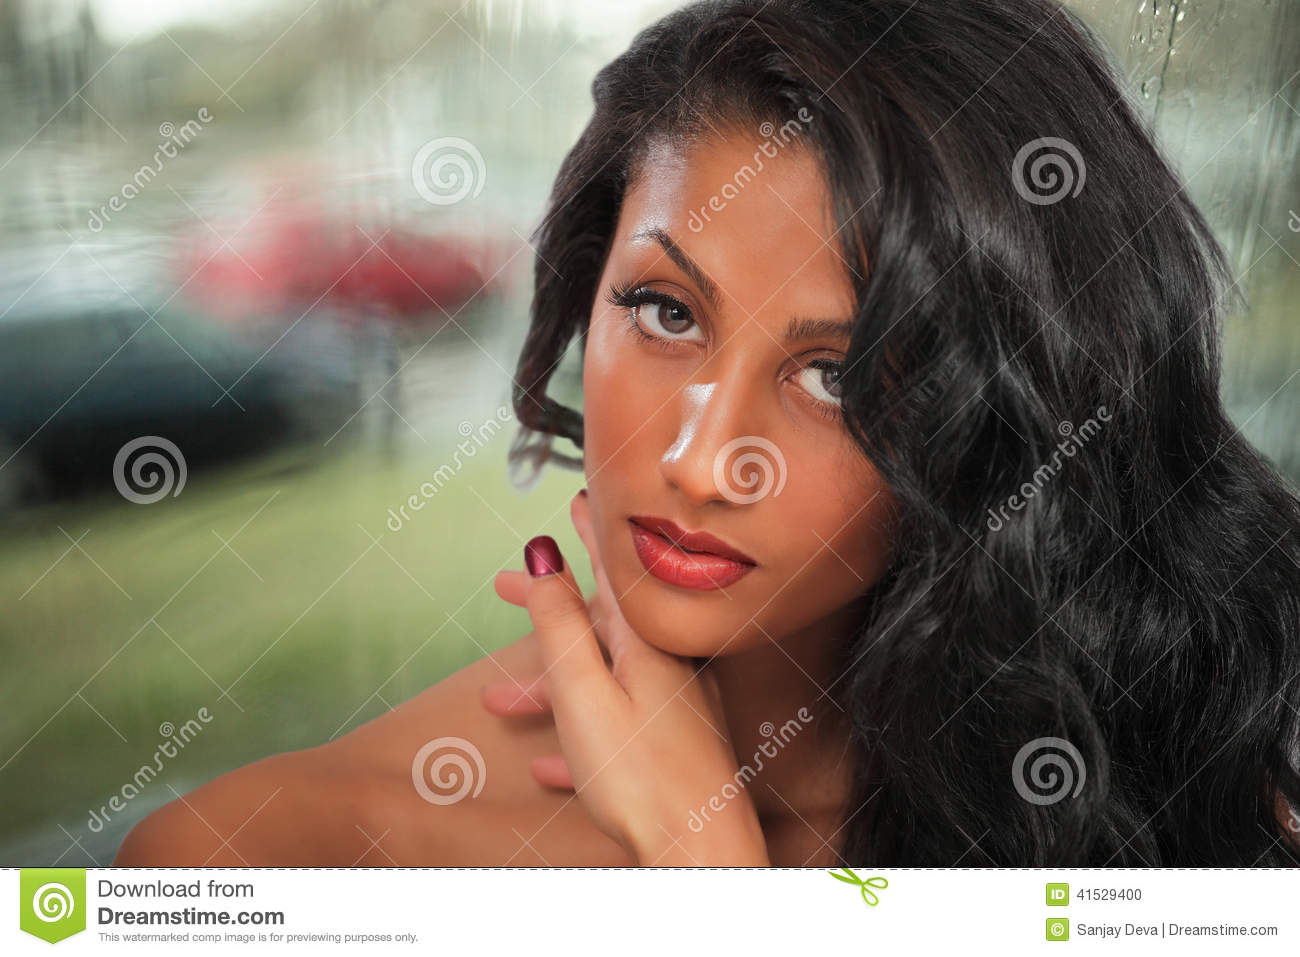 Ethereal Beauty Stock Photo - Image 41529400-1852